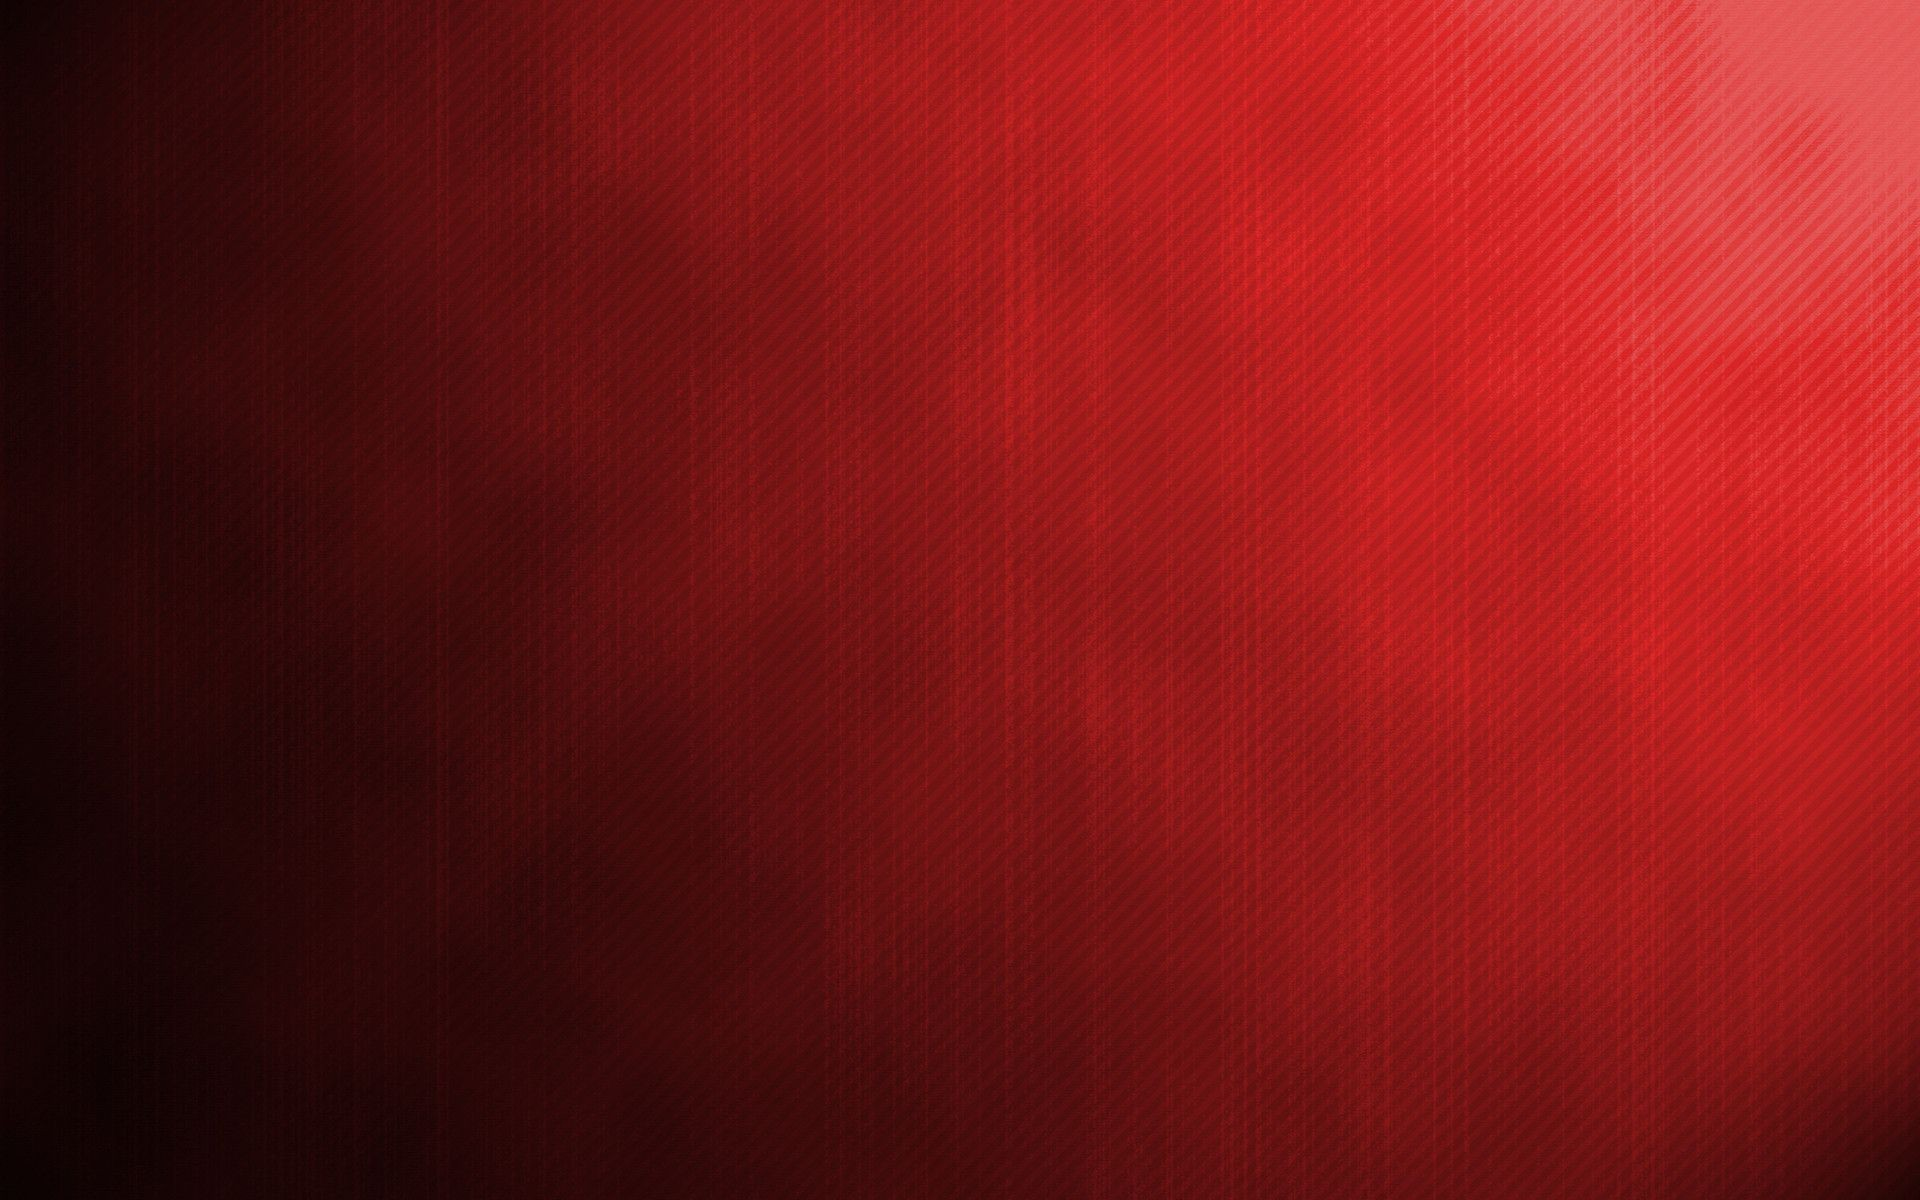 plain red background ·① download free amazing high resolution, Powerpoint templates